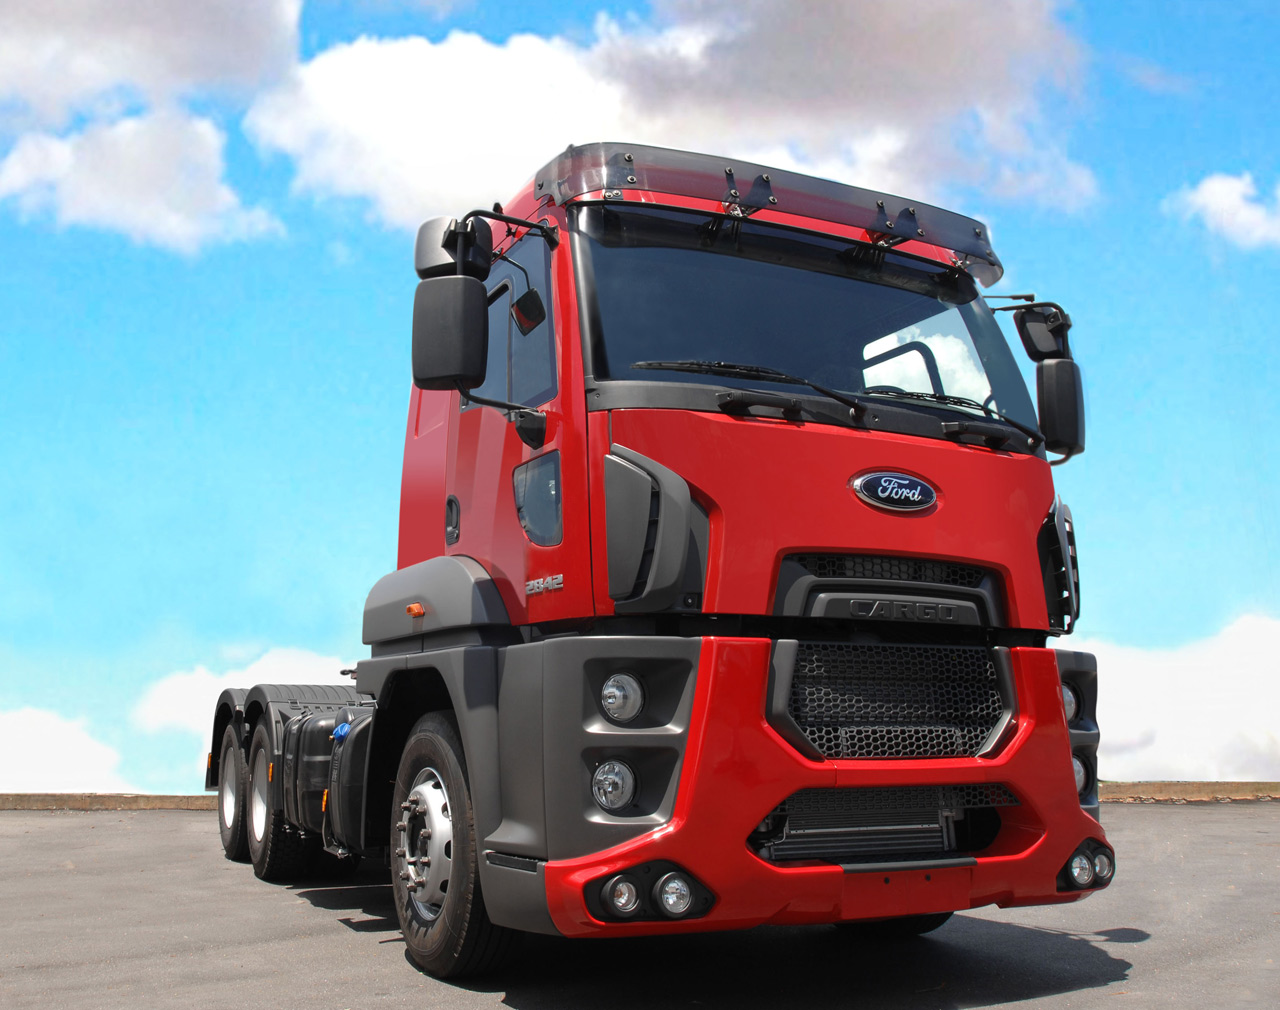 Ford cargo photo - 1